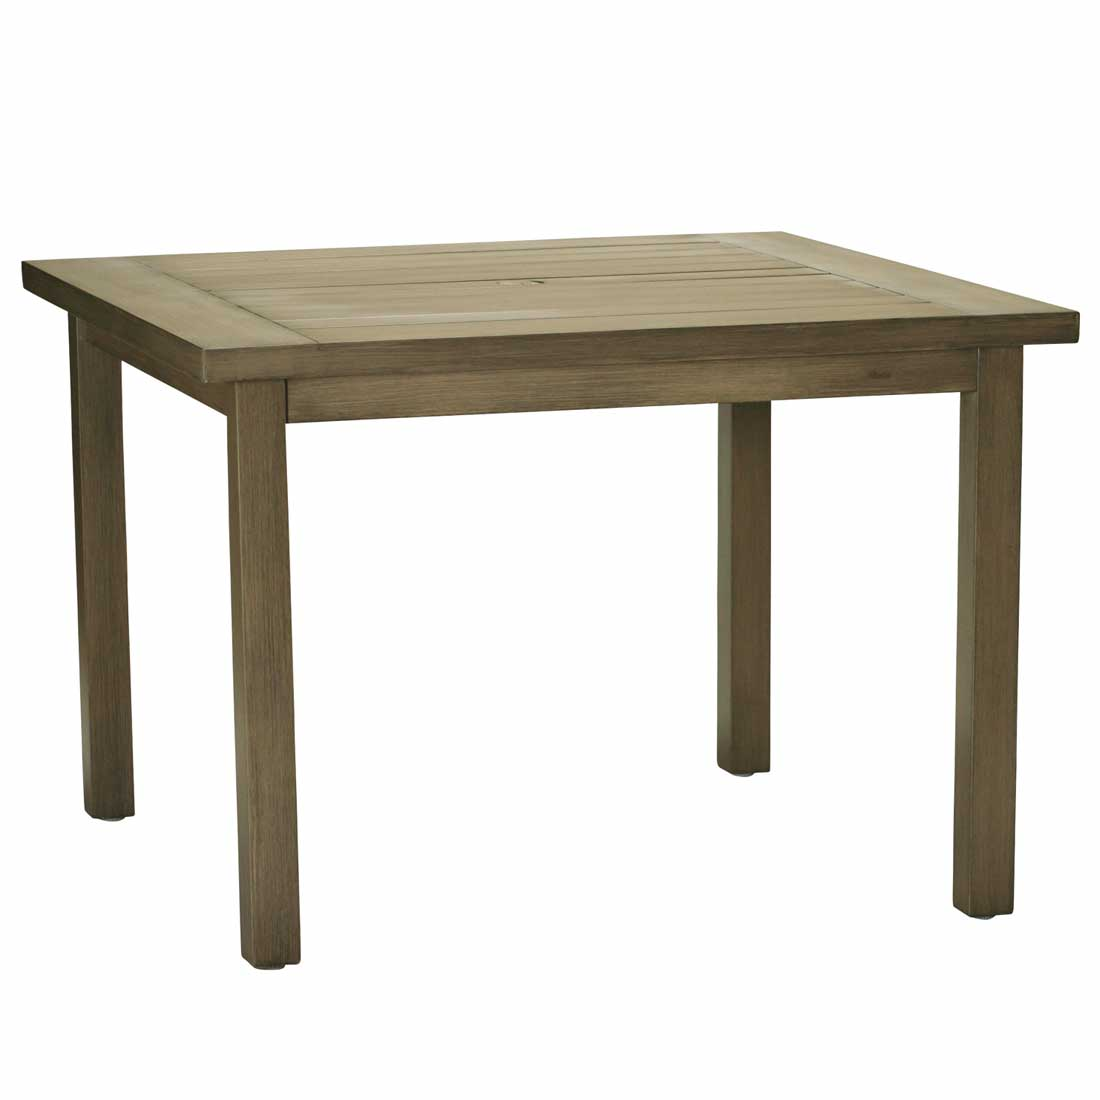 Club Aluminum Square Dining Table